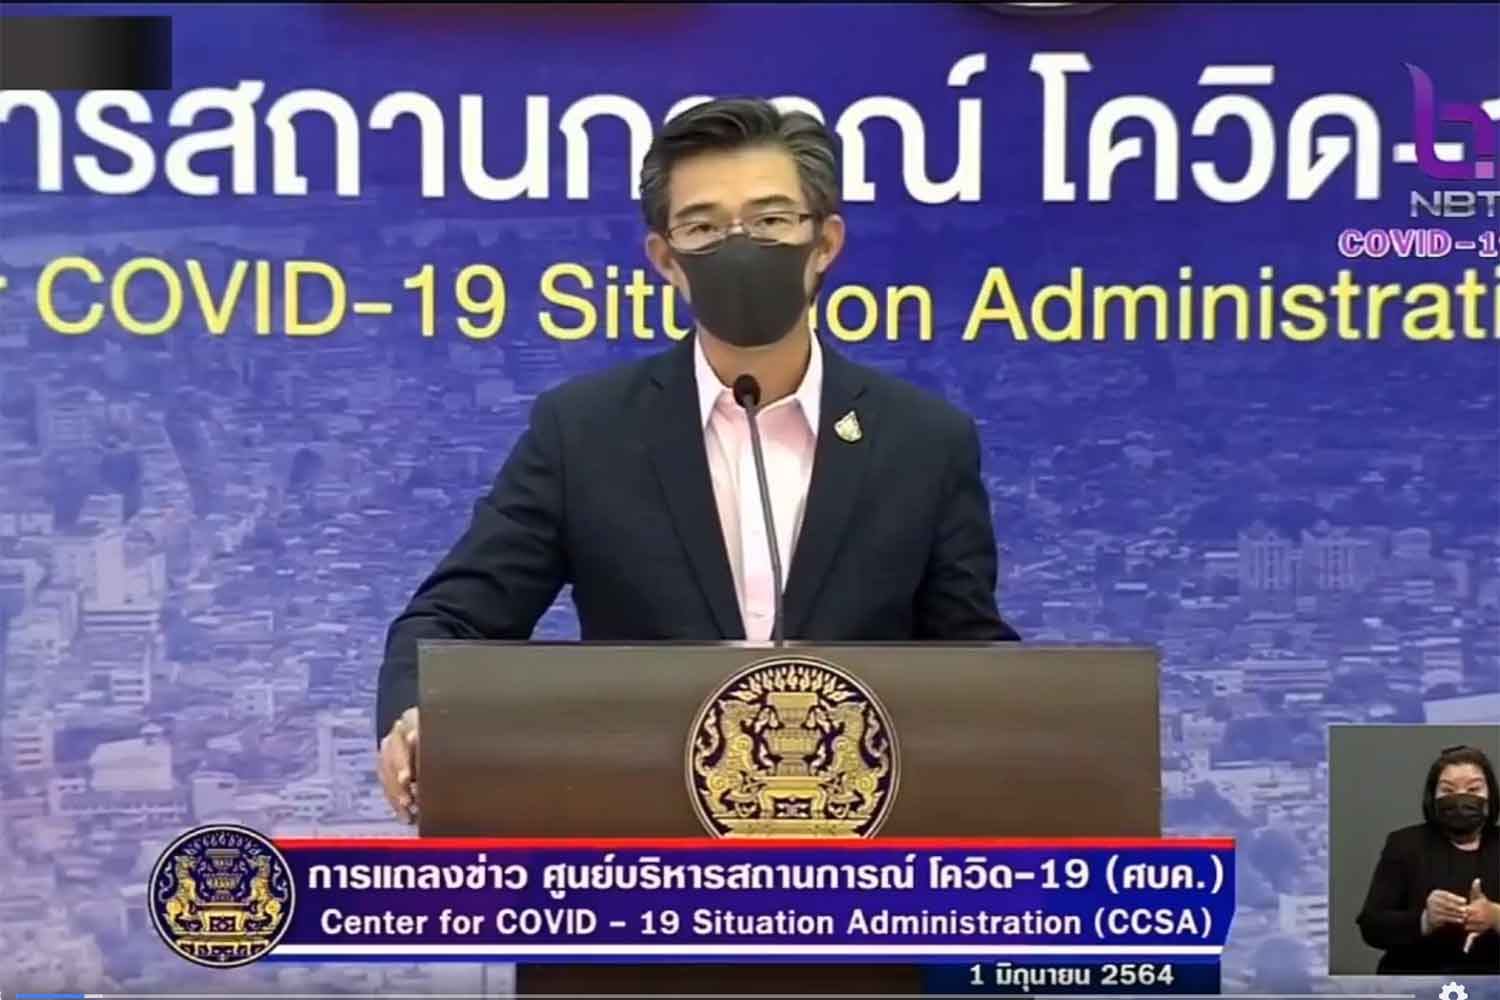 Taweesilp Visanuyothin, spokesman for the Centre for Covid-19 Situation Administration, speaks during a press conference on the local Covid-19 situation, at Government House in Bangkok on Tuesday. (Screenshot)